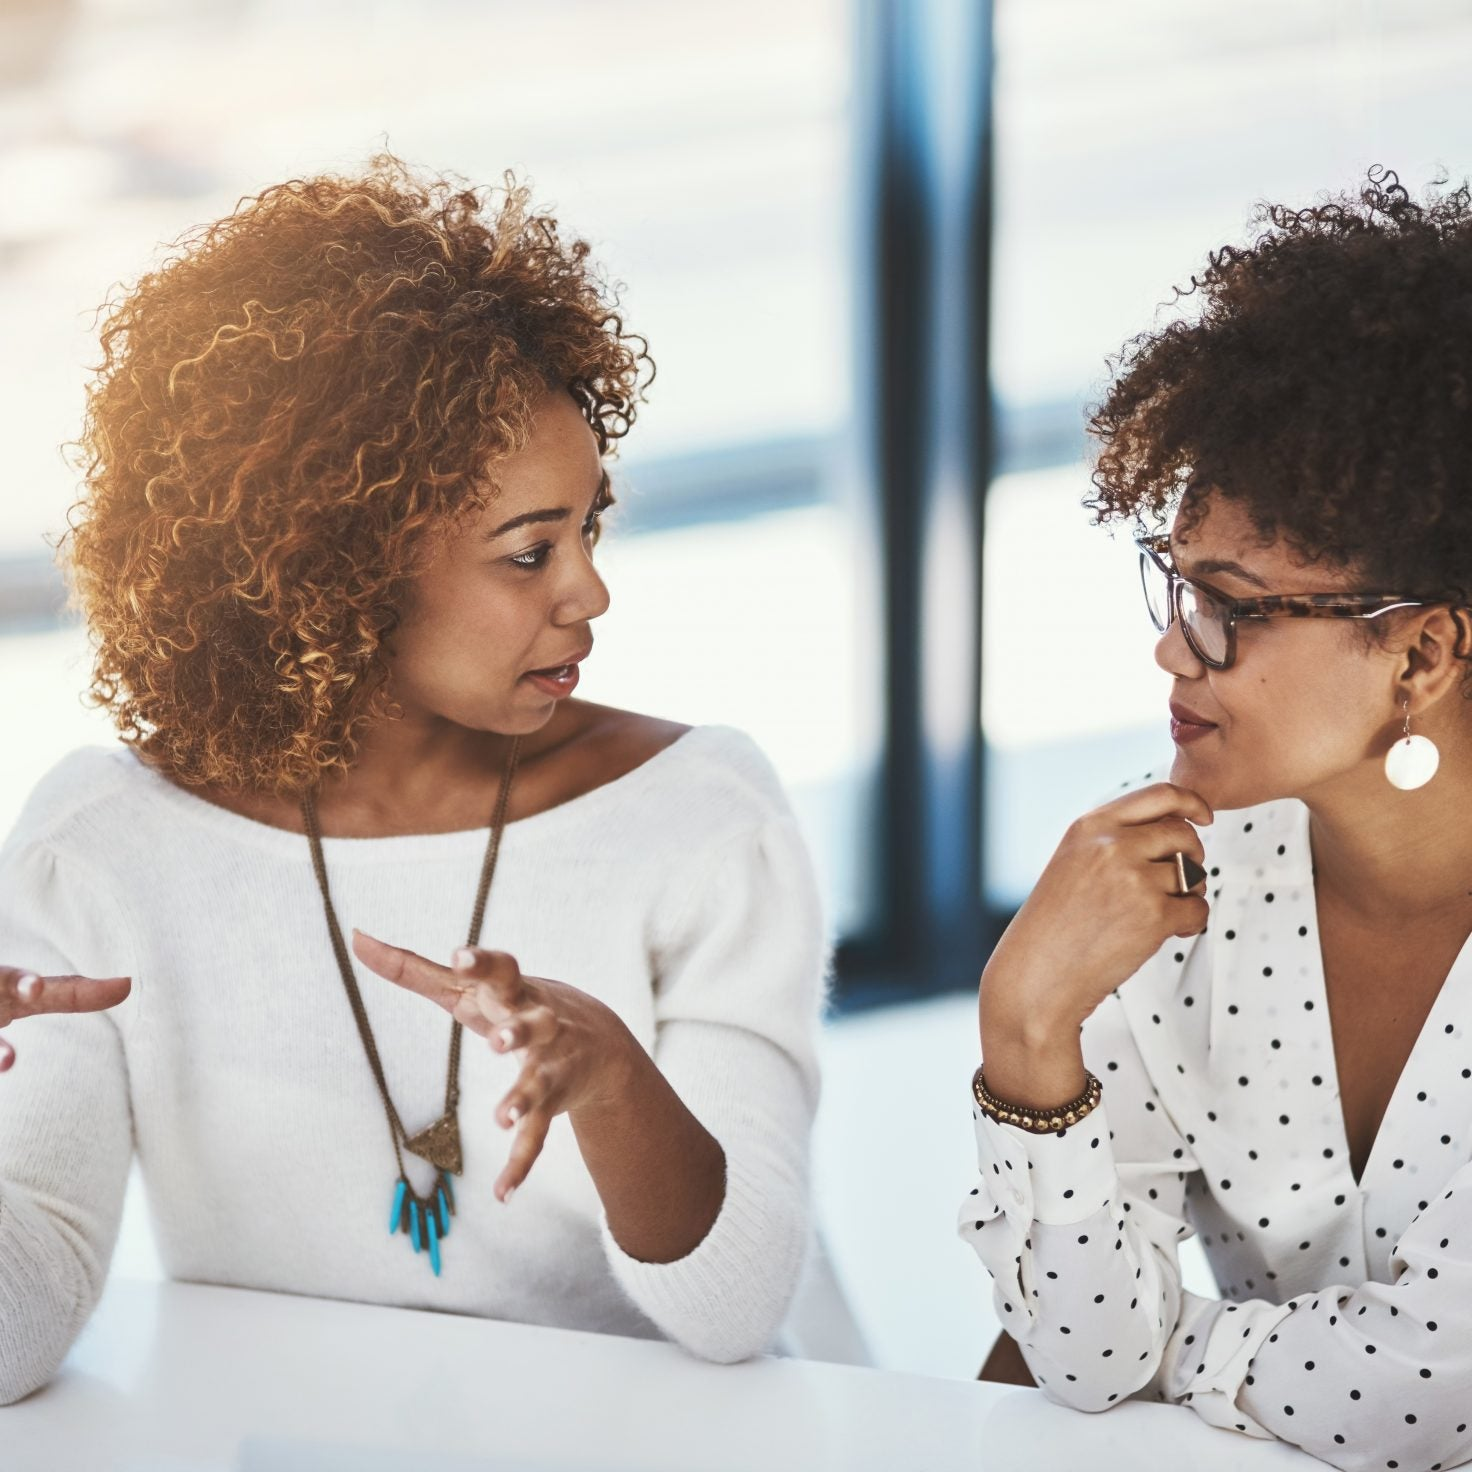 Black Women Call Out Toxic Workplace Culture At Top Feminist Organizations